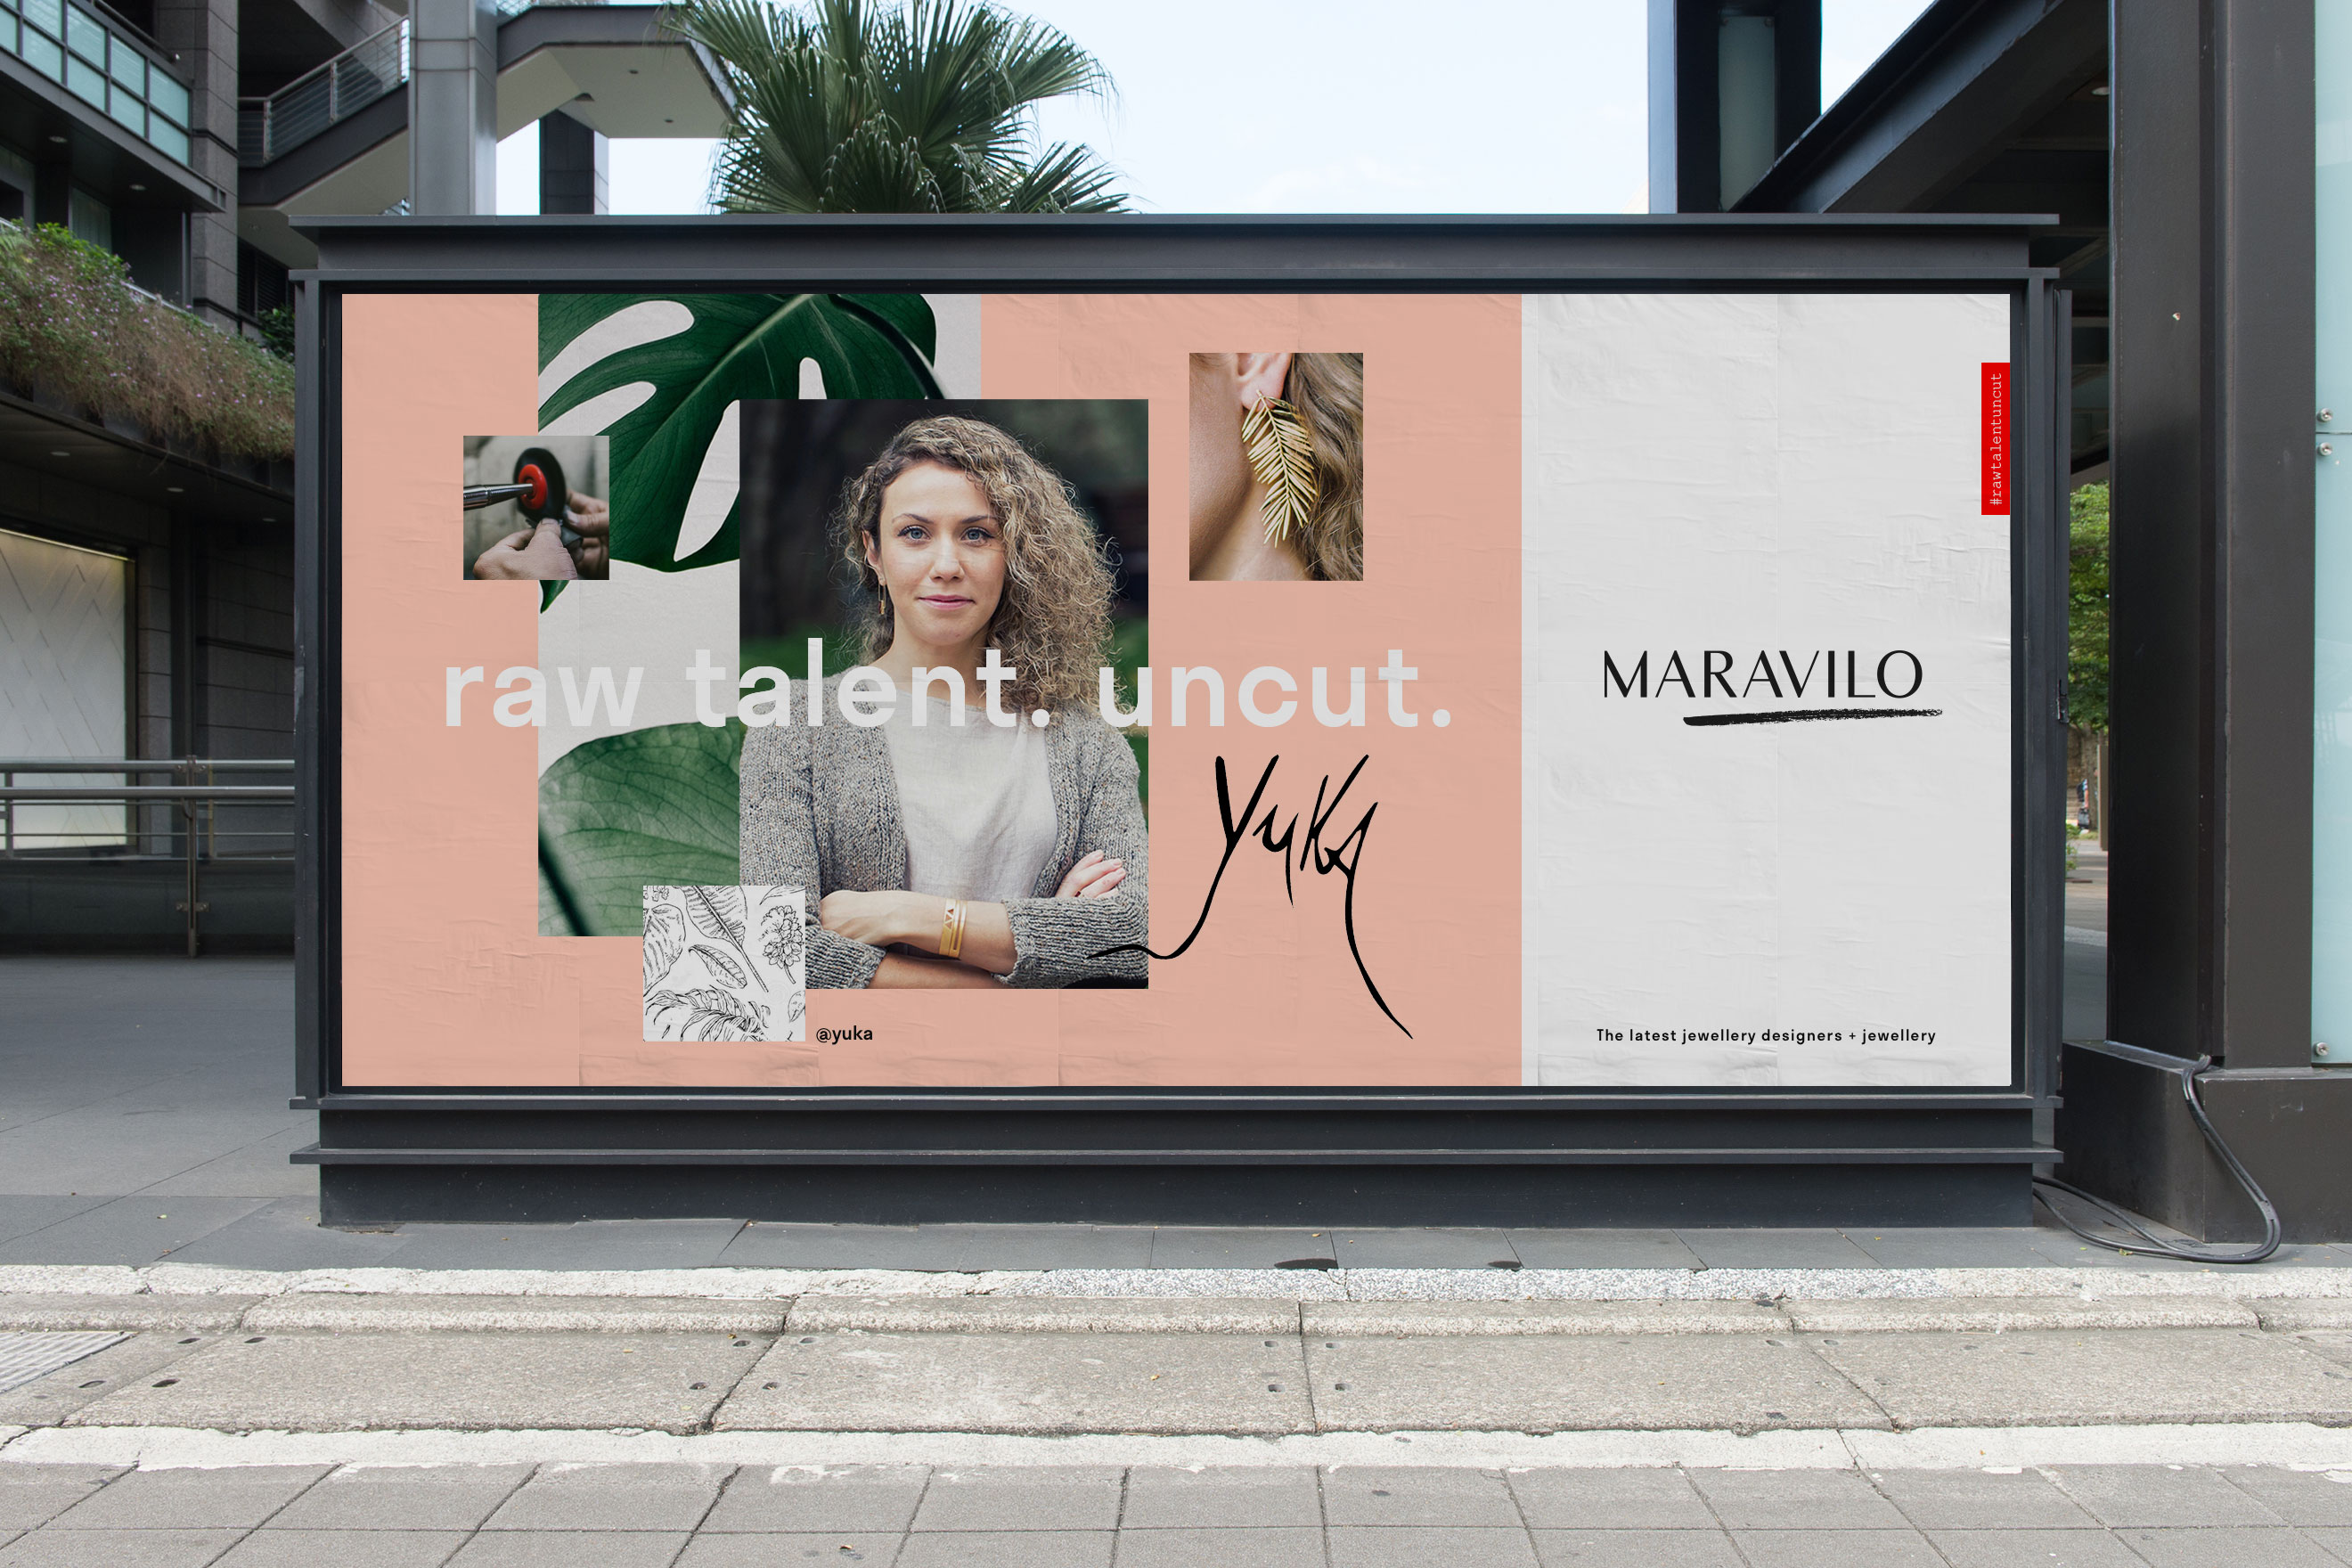 Maravilo branded poster in situ on a public street